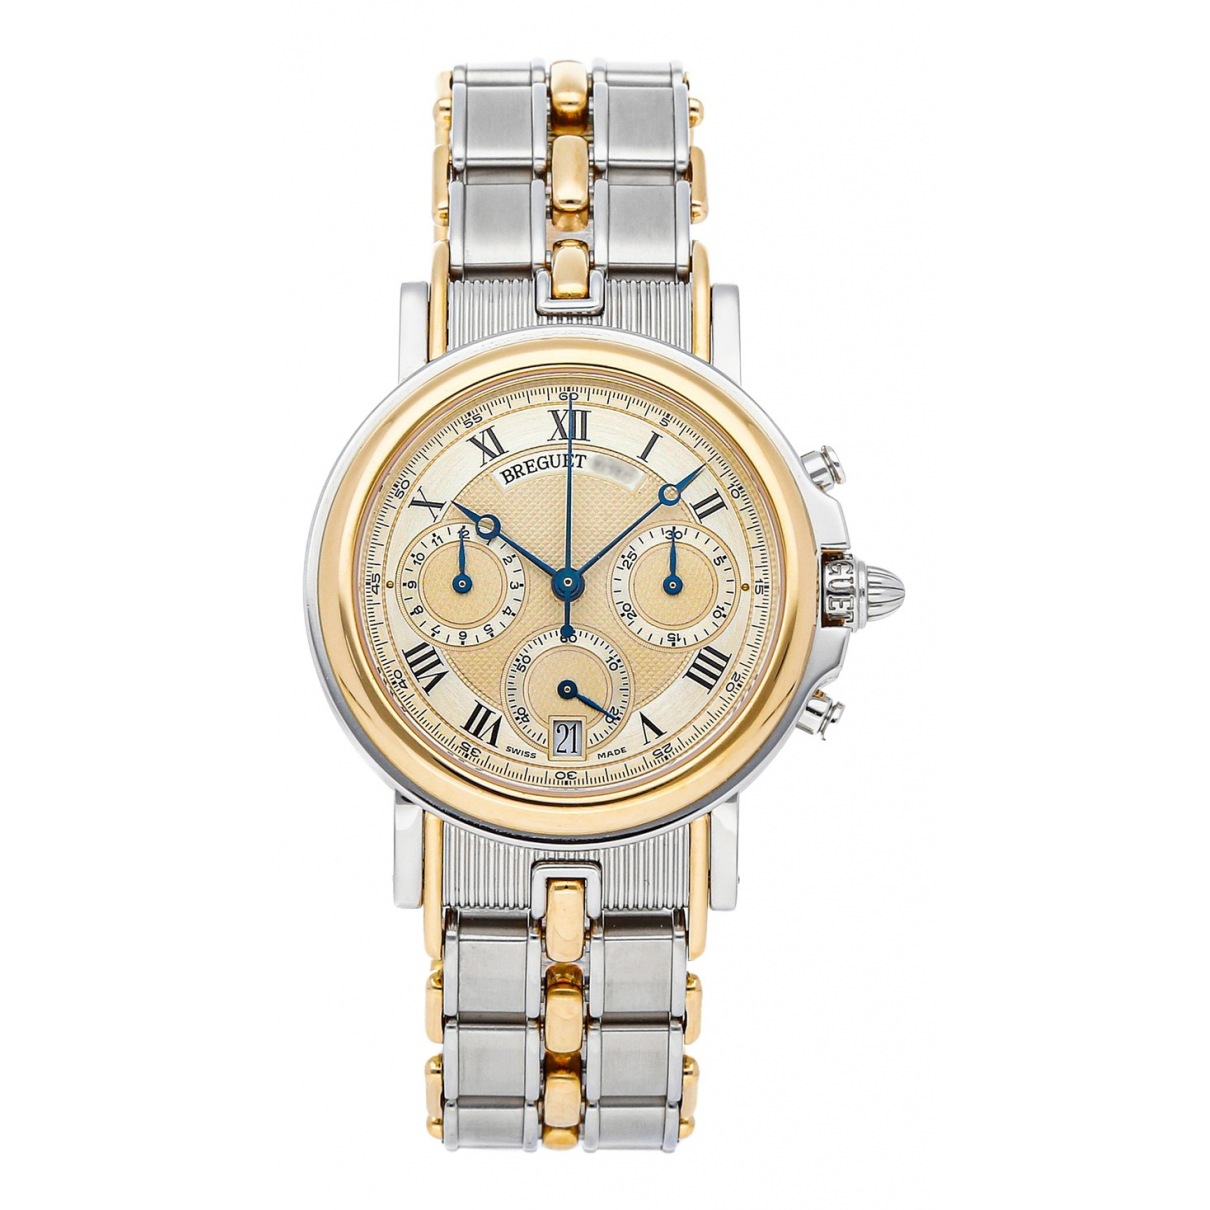 breguet n silver gold and steel watches 1 Aysim